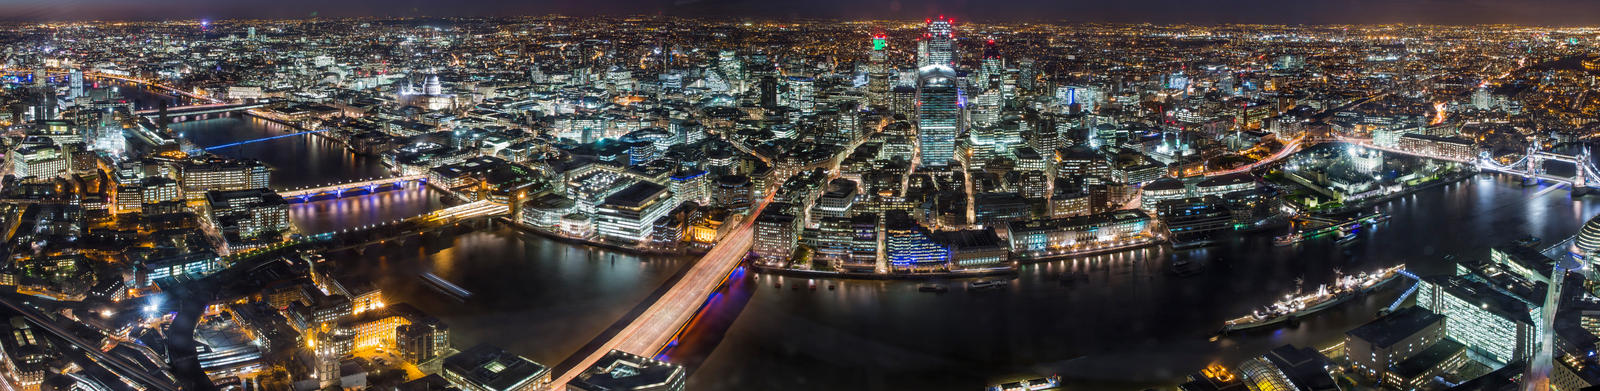 London at night by Captain-Marmote